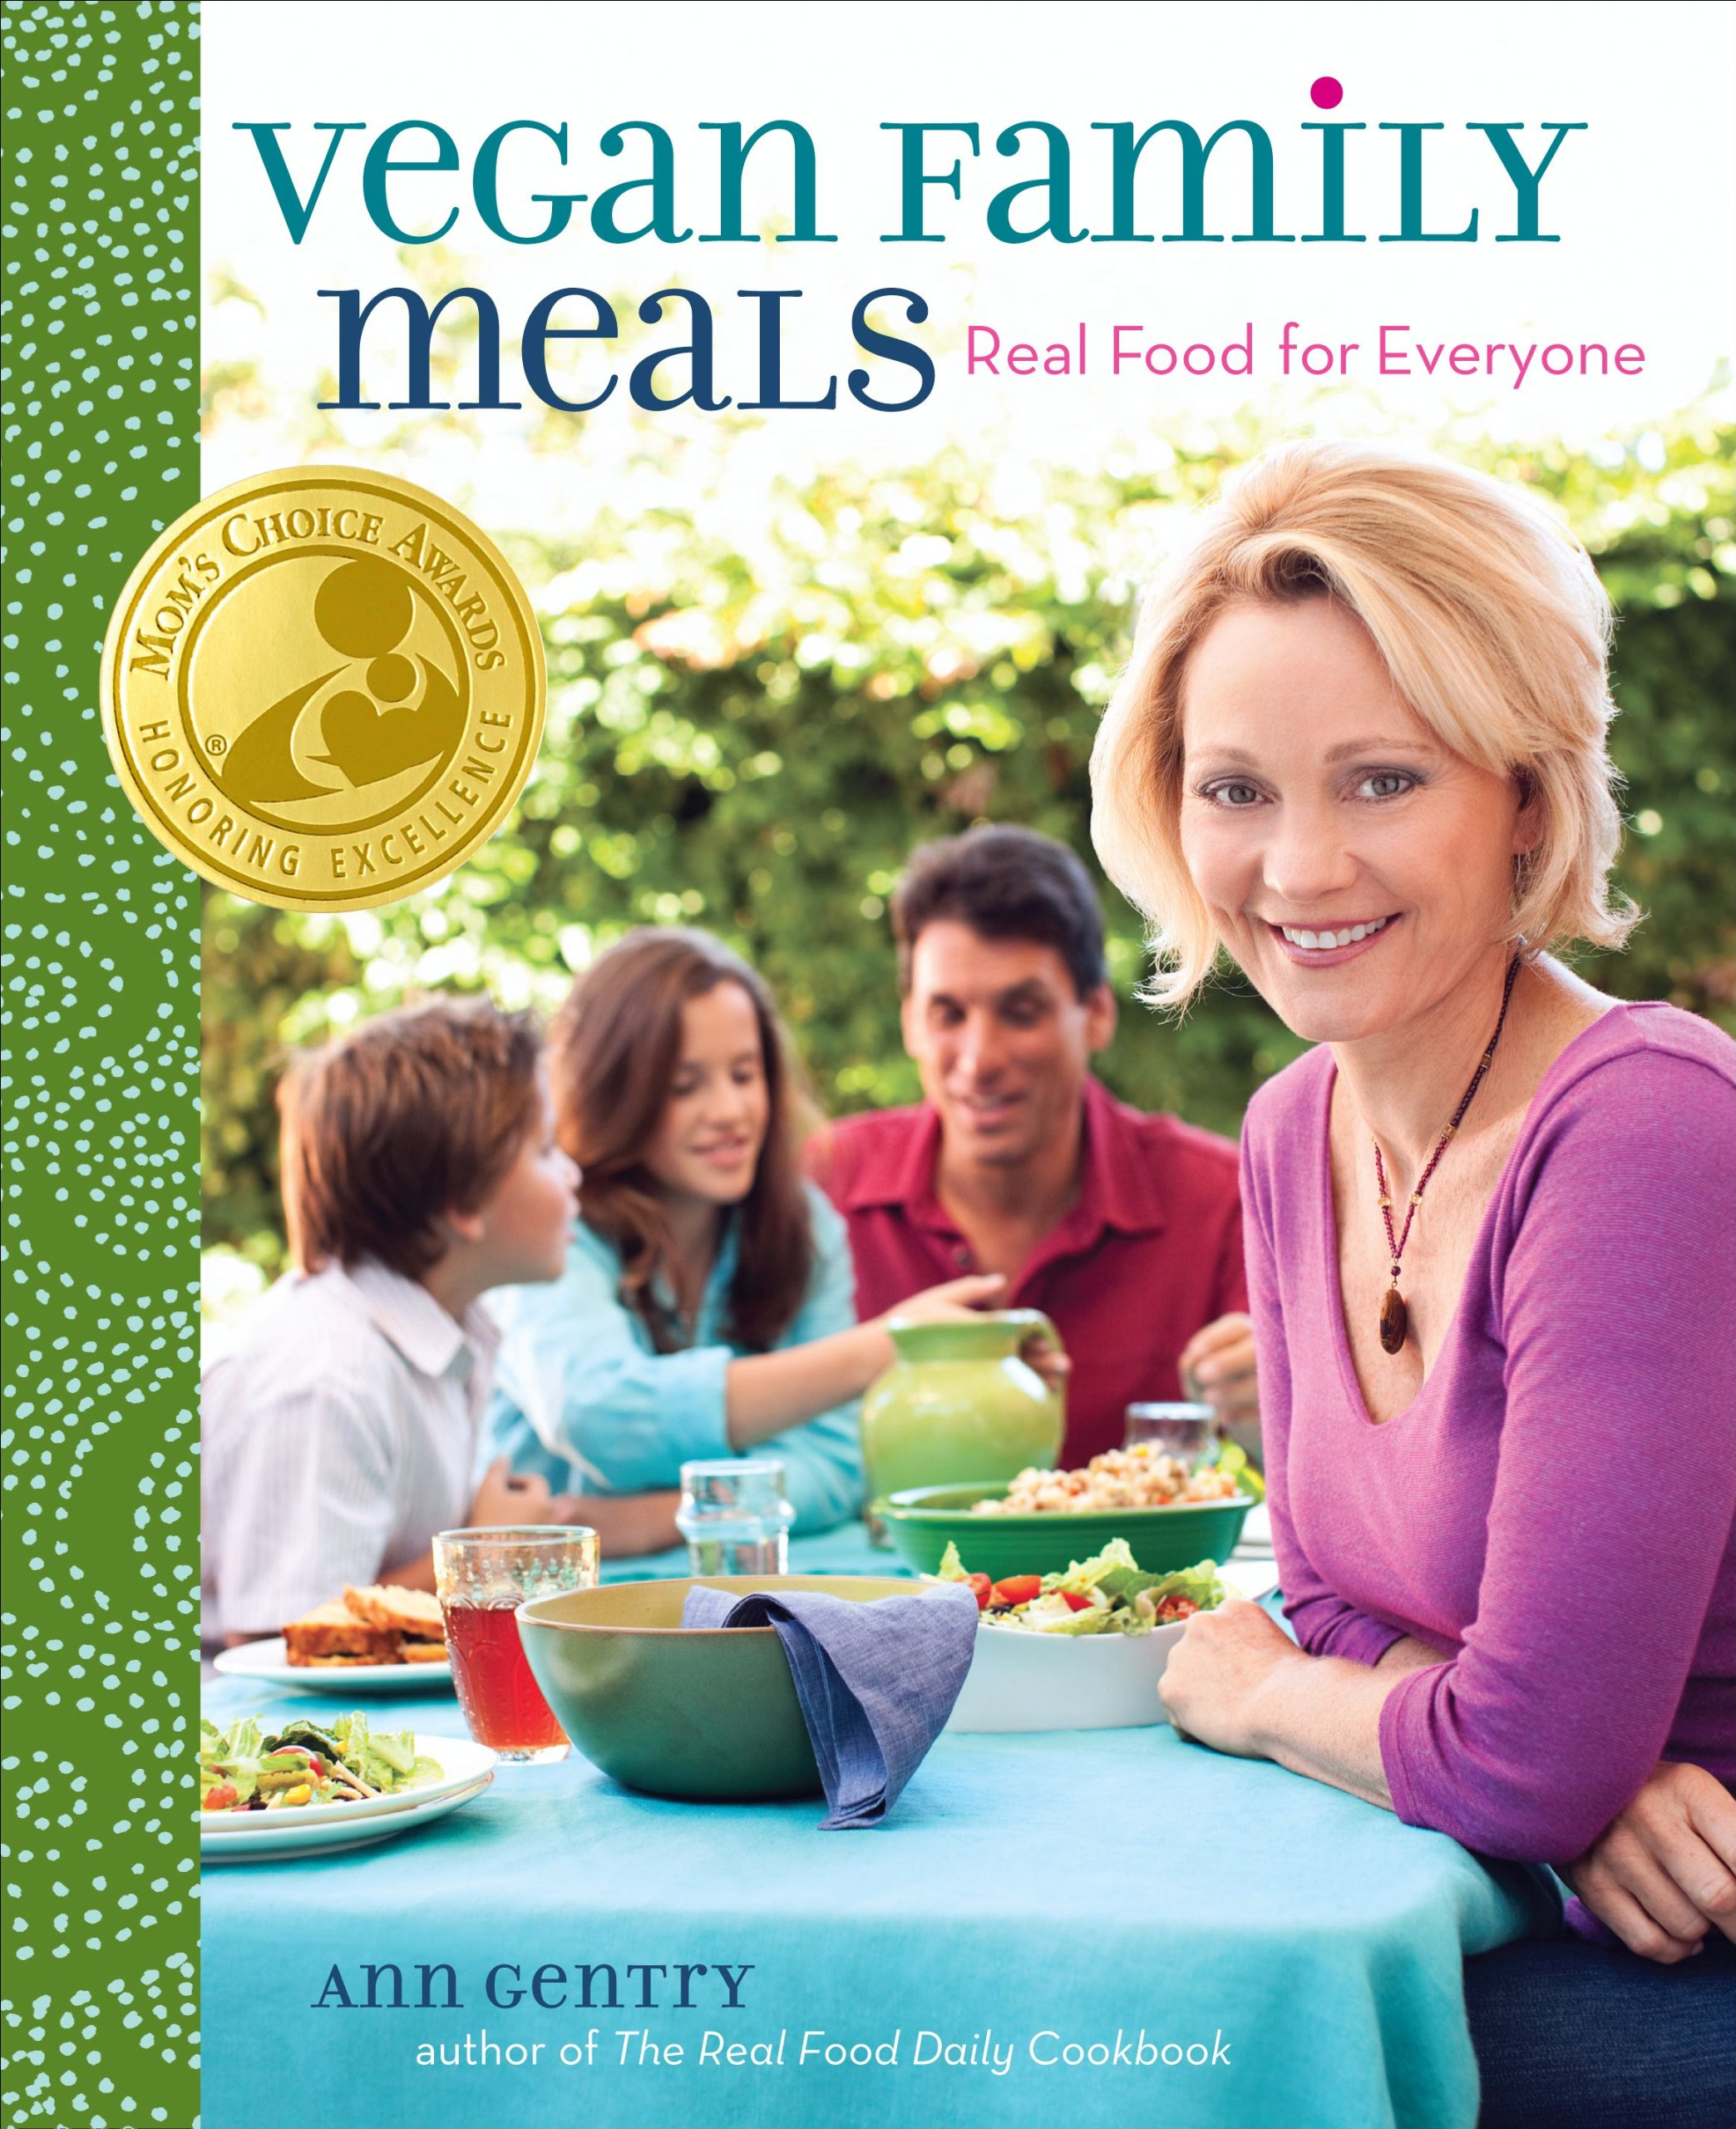 amazon vegan family meals real food for everyone ann gentry